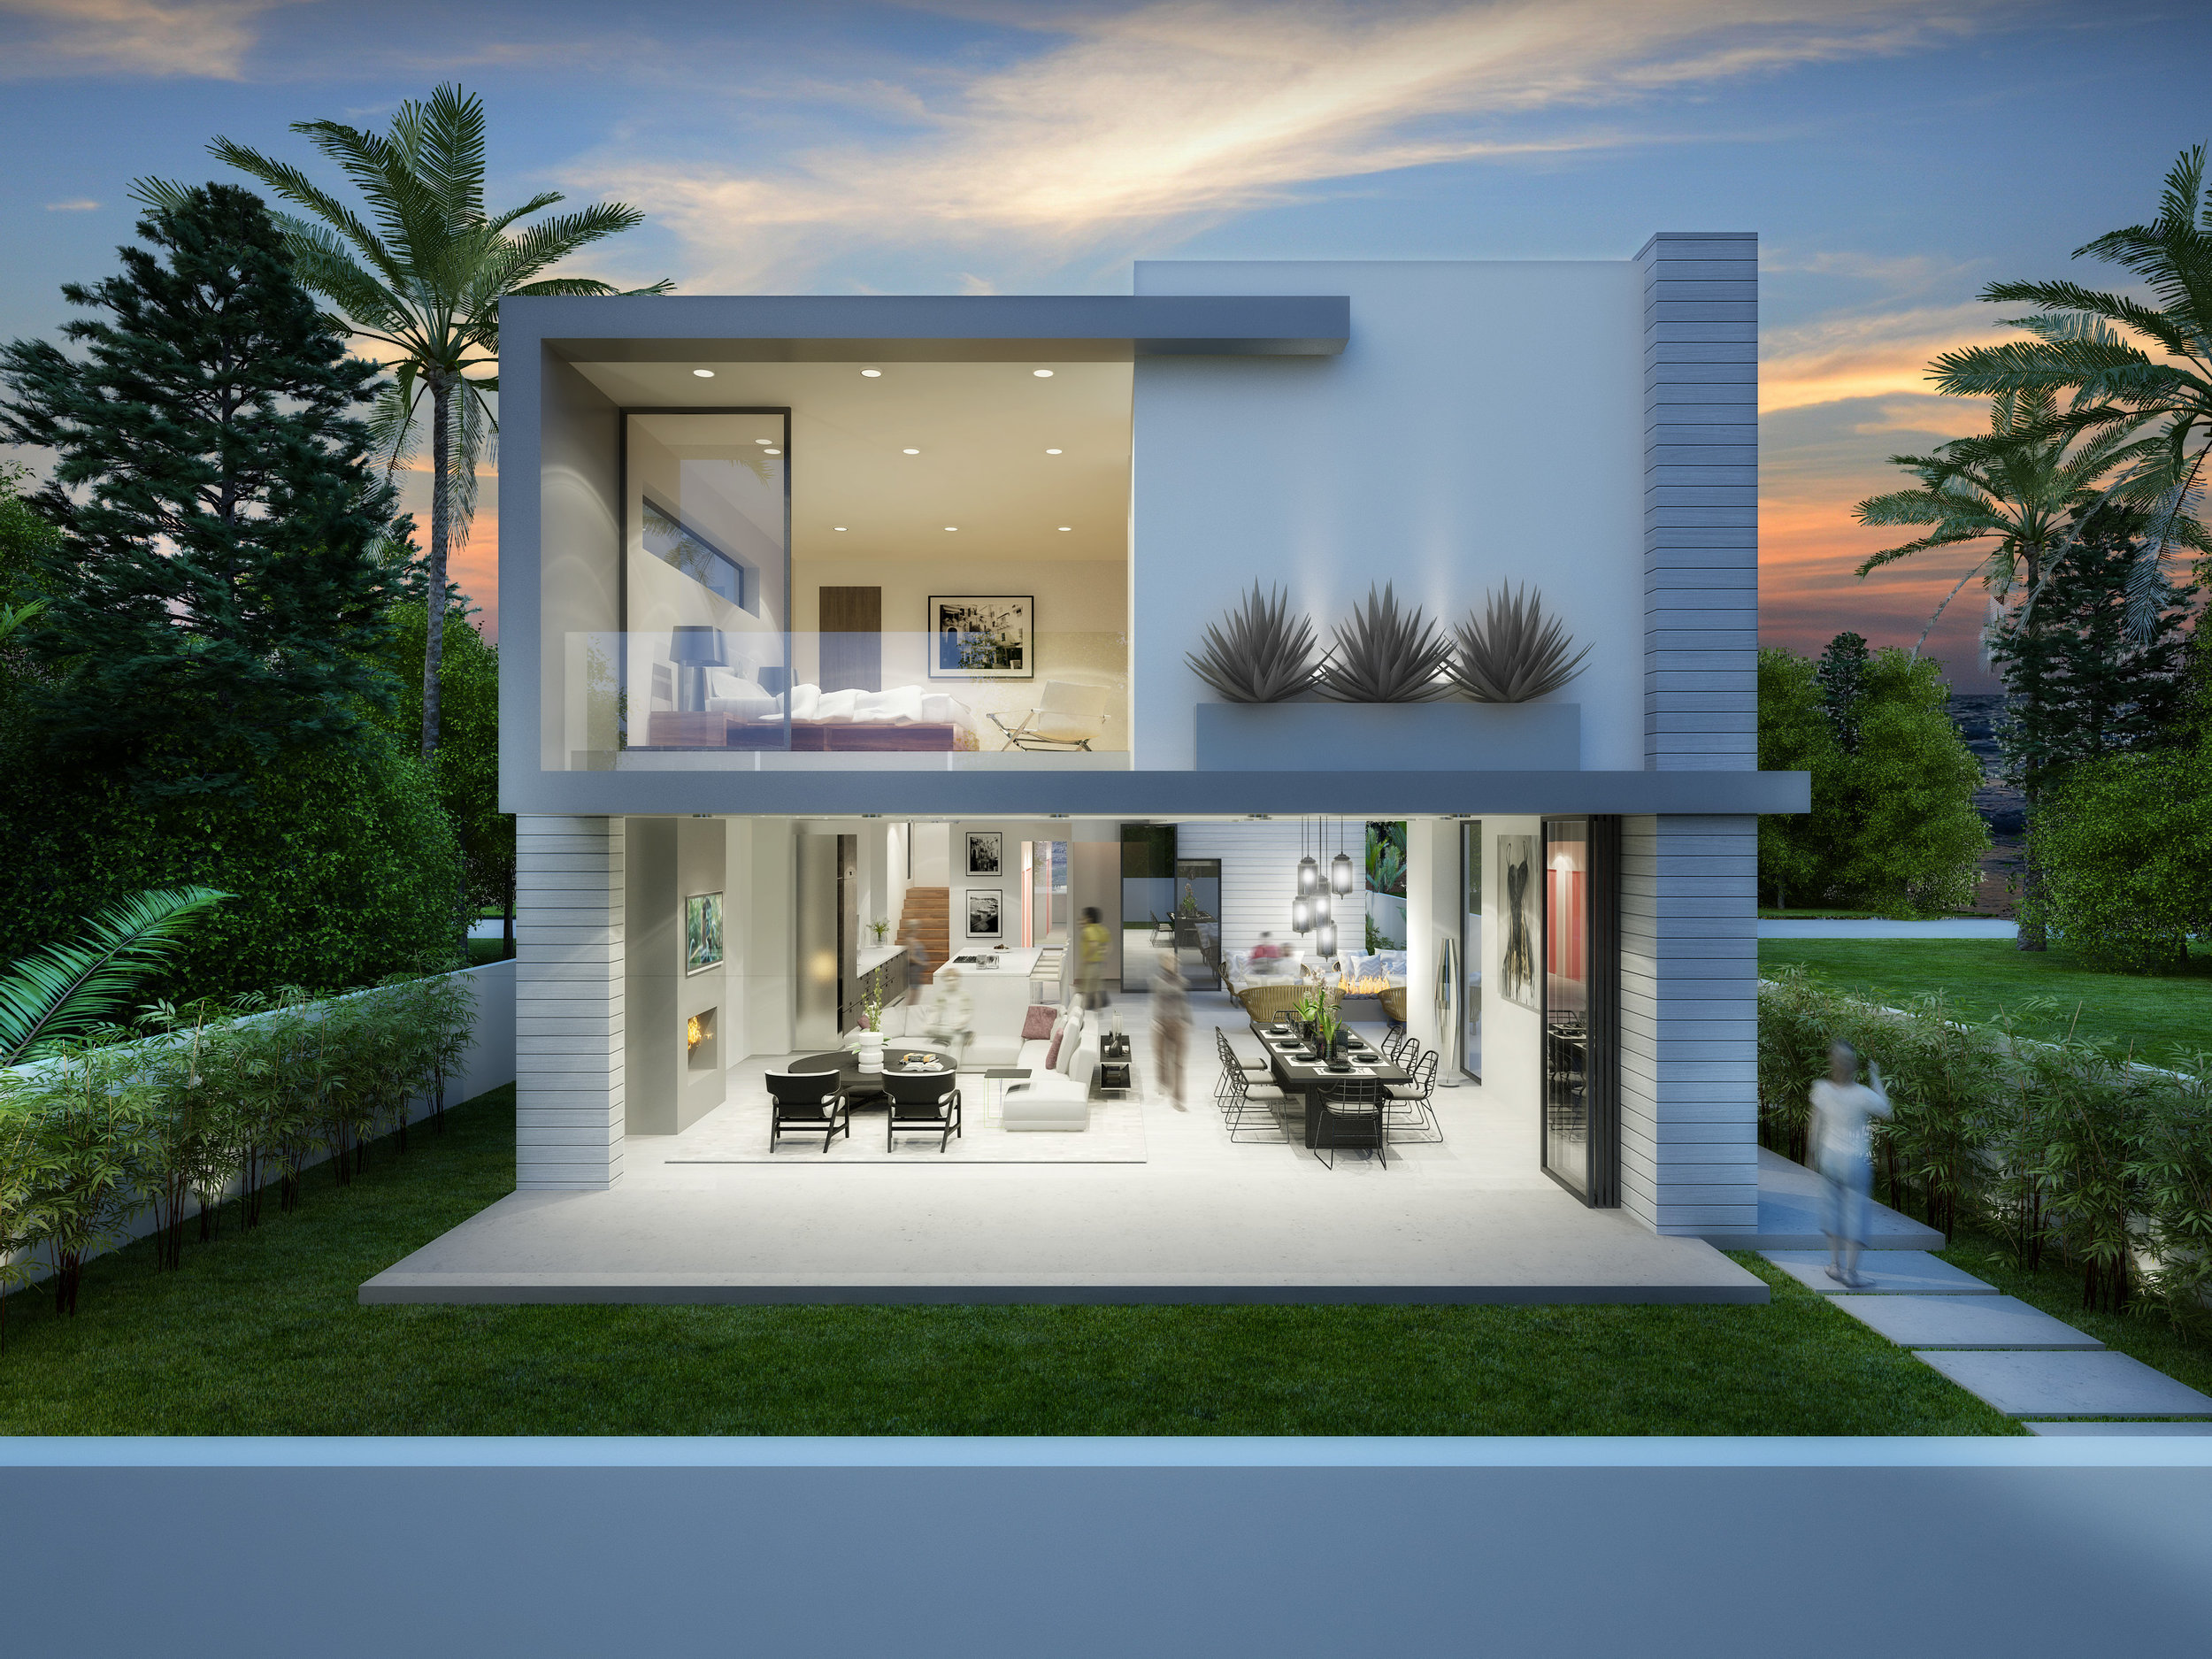 - WOODLAWN DR | VENICE BEACH | CALIFORNIA3200 SQ FT | SINGLE FAMILY HOMEVIEW MORE